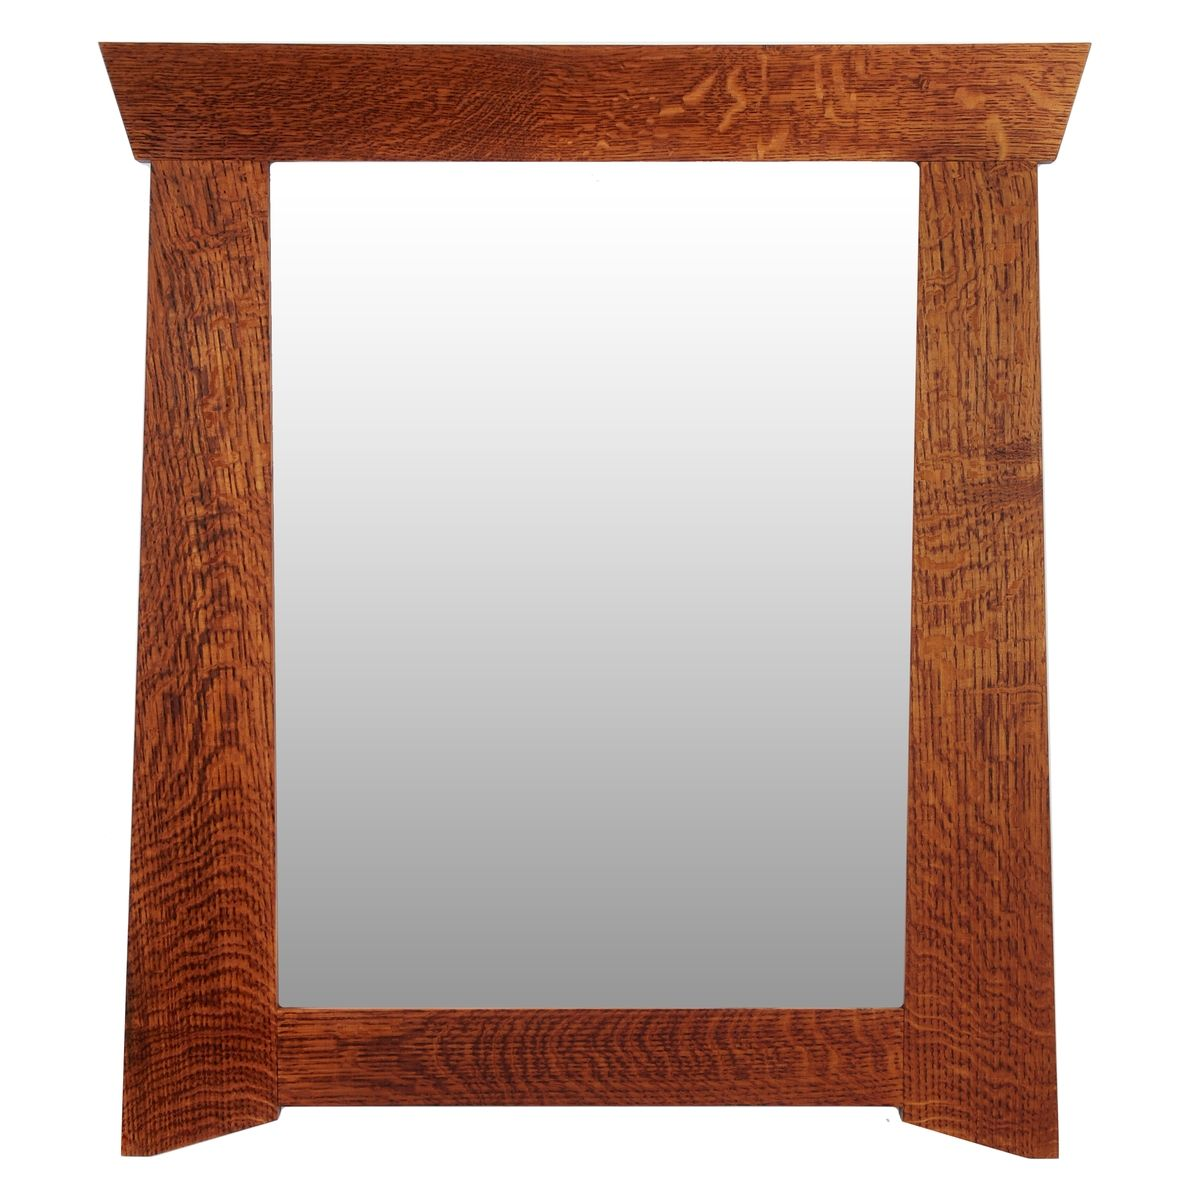 Hand crafted craftsman mirror the rosemont by thrasher for Custom made mirrors